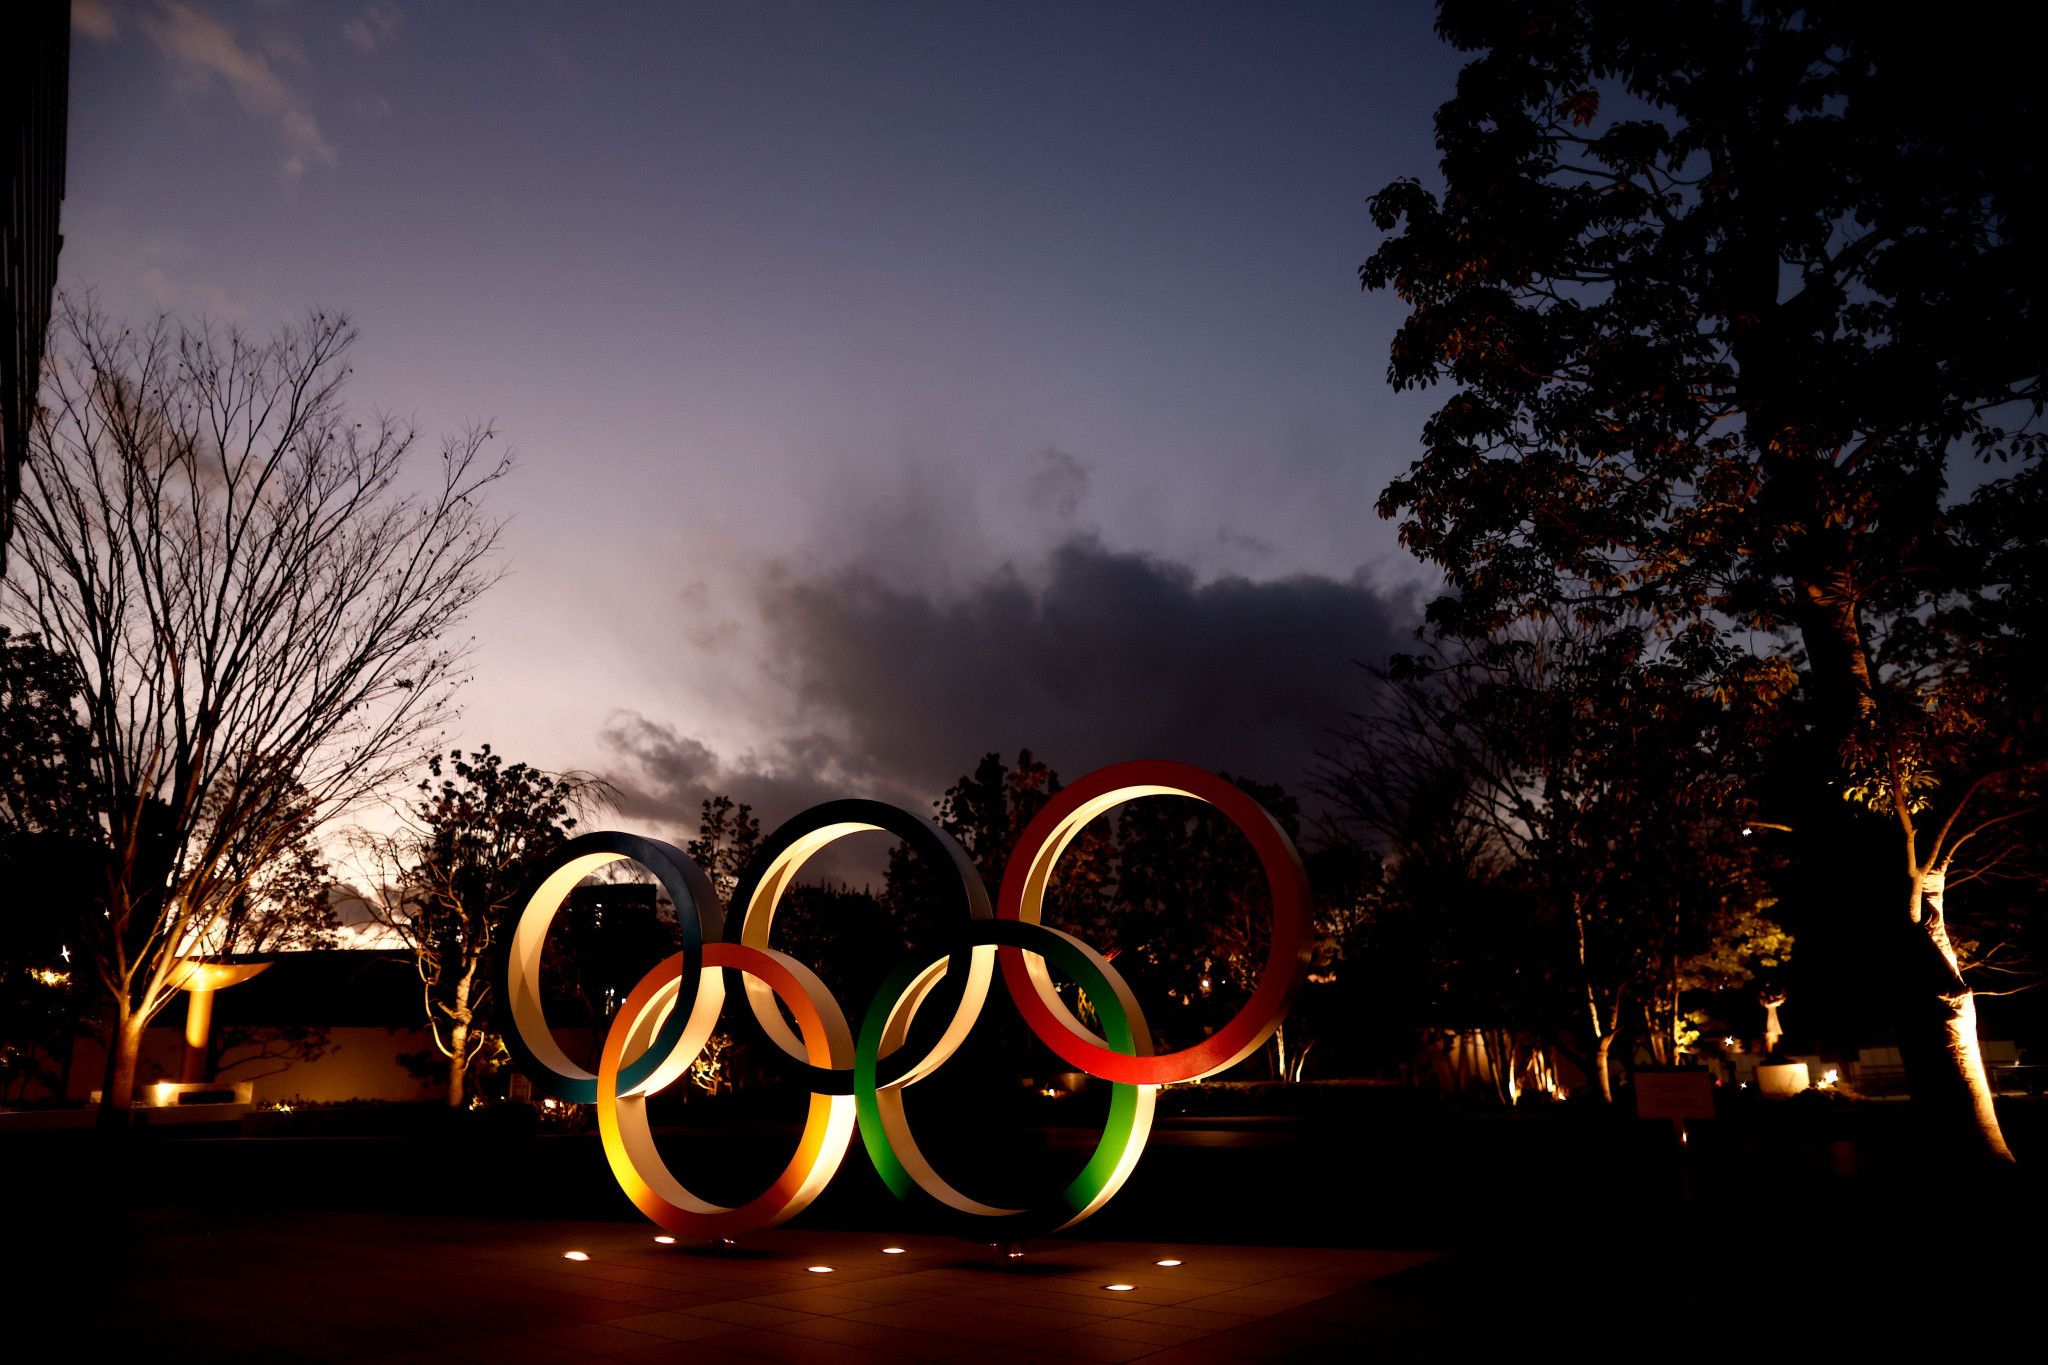 The IOC hopes to have as many athletes vaccinated as possible prior to Tokyo 2020 ©Getty Images